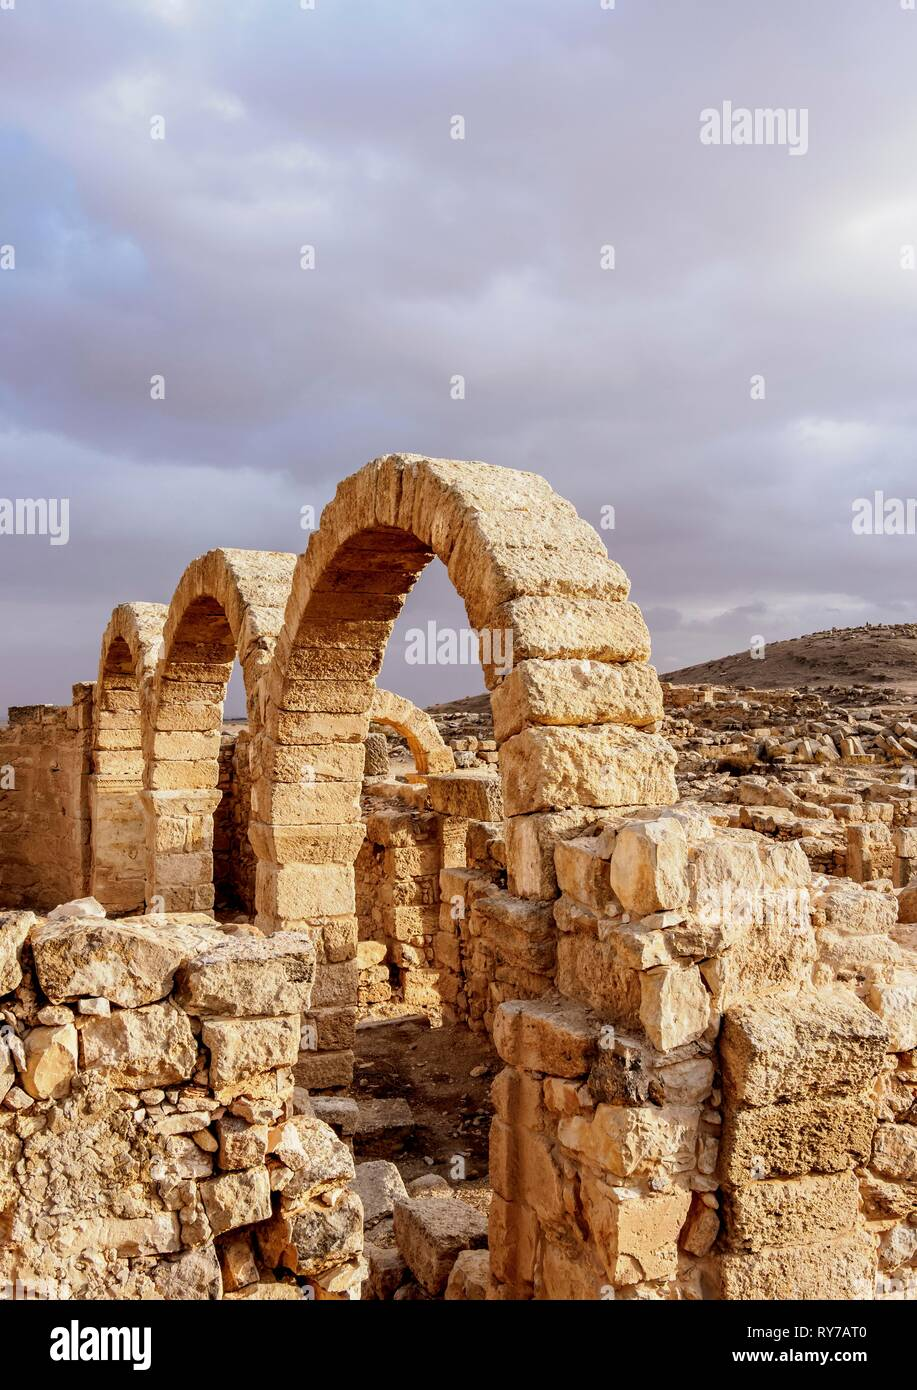 Umm ar-Rasas Ruins, Amman Governorate, Jordan Stock Photo